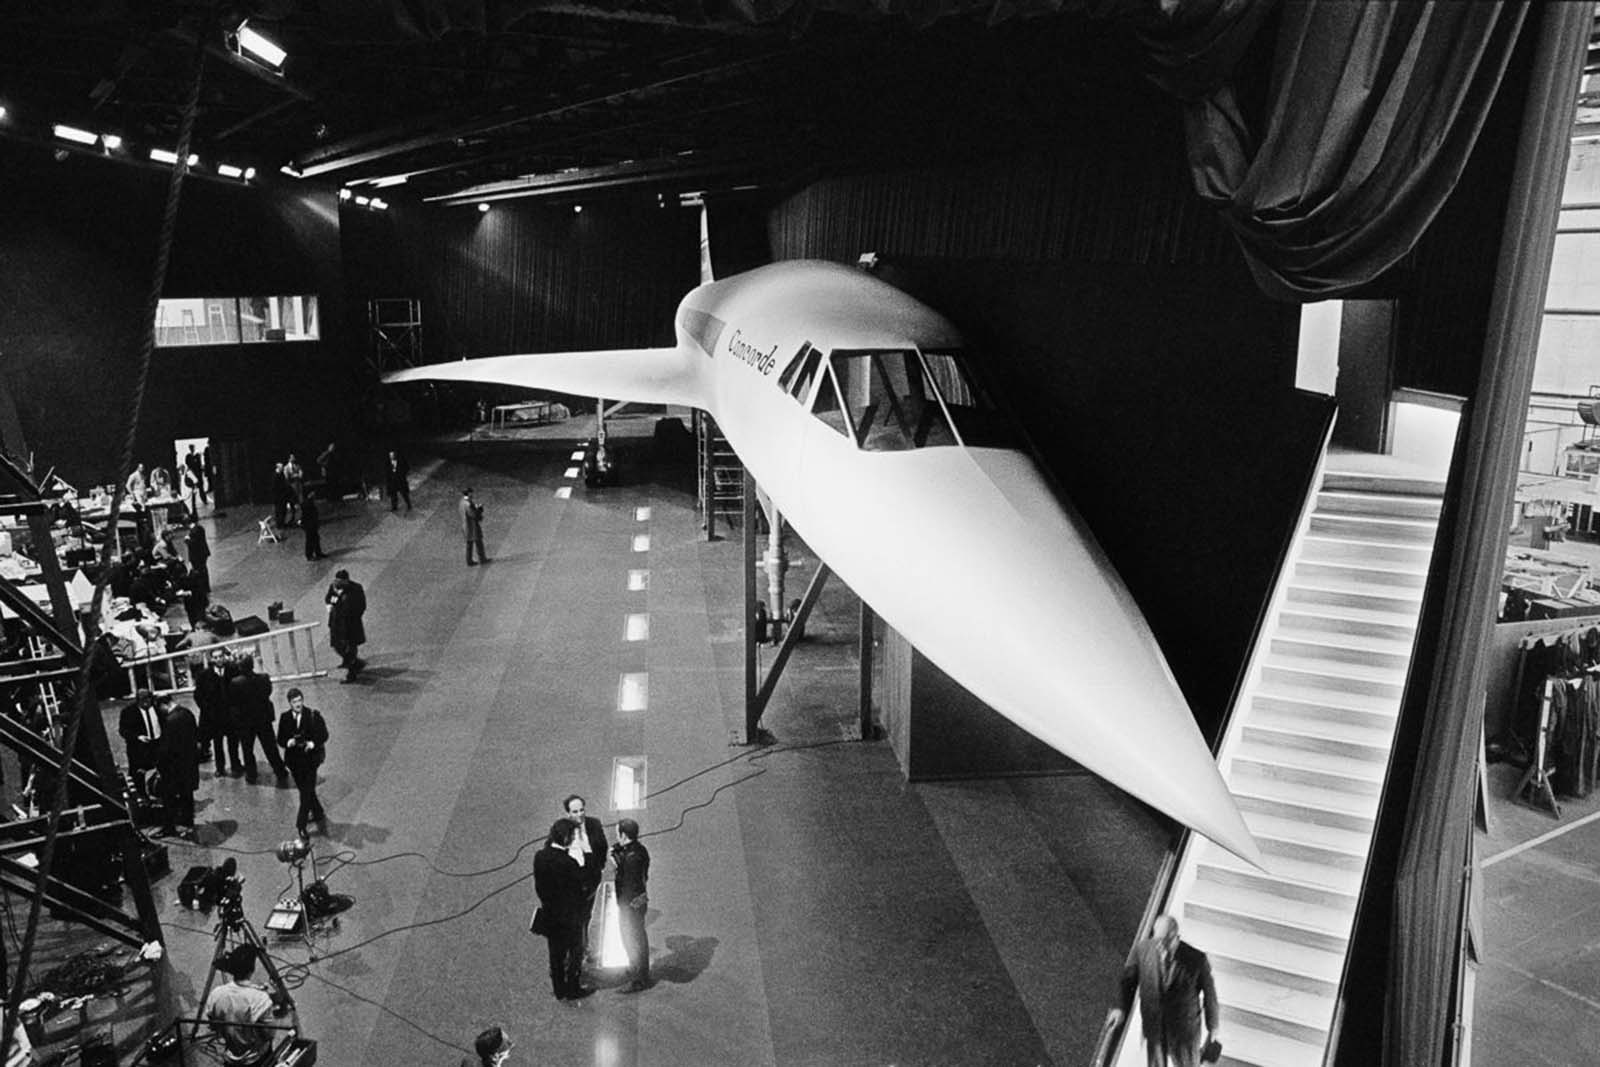 A full-scale wooden model of the Concorde on display. 1967.